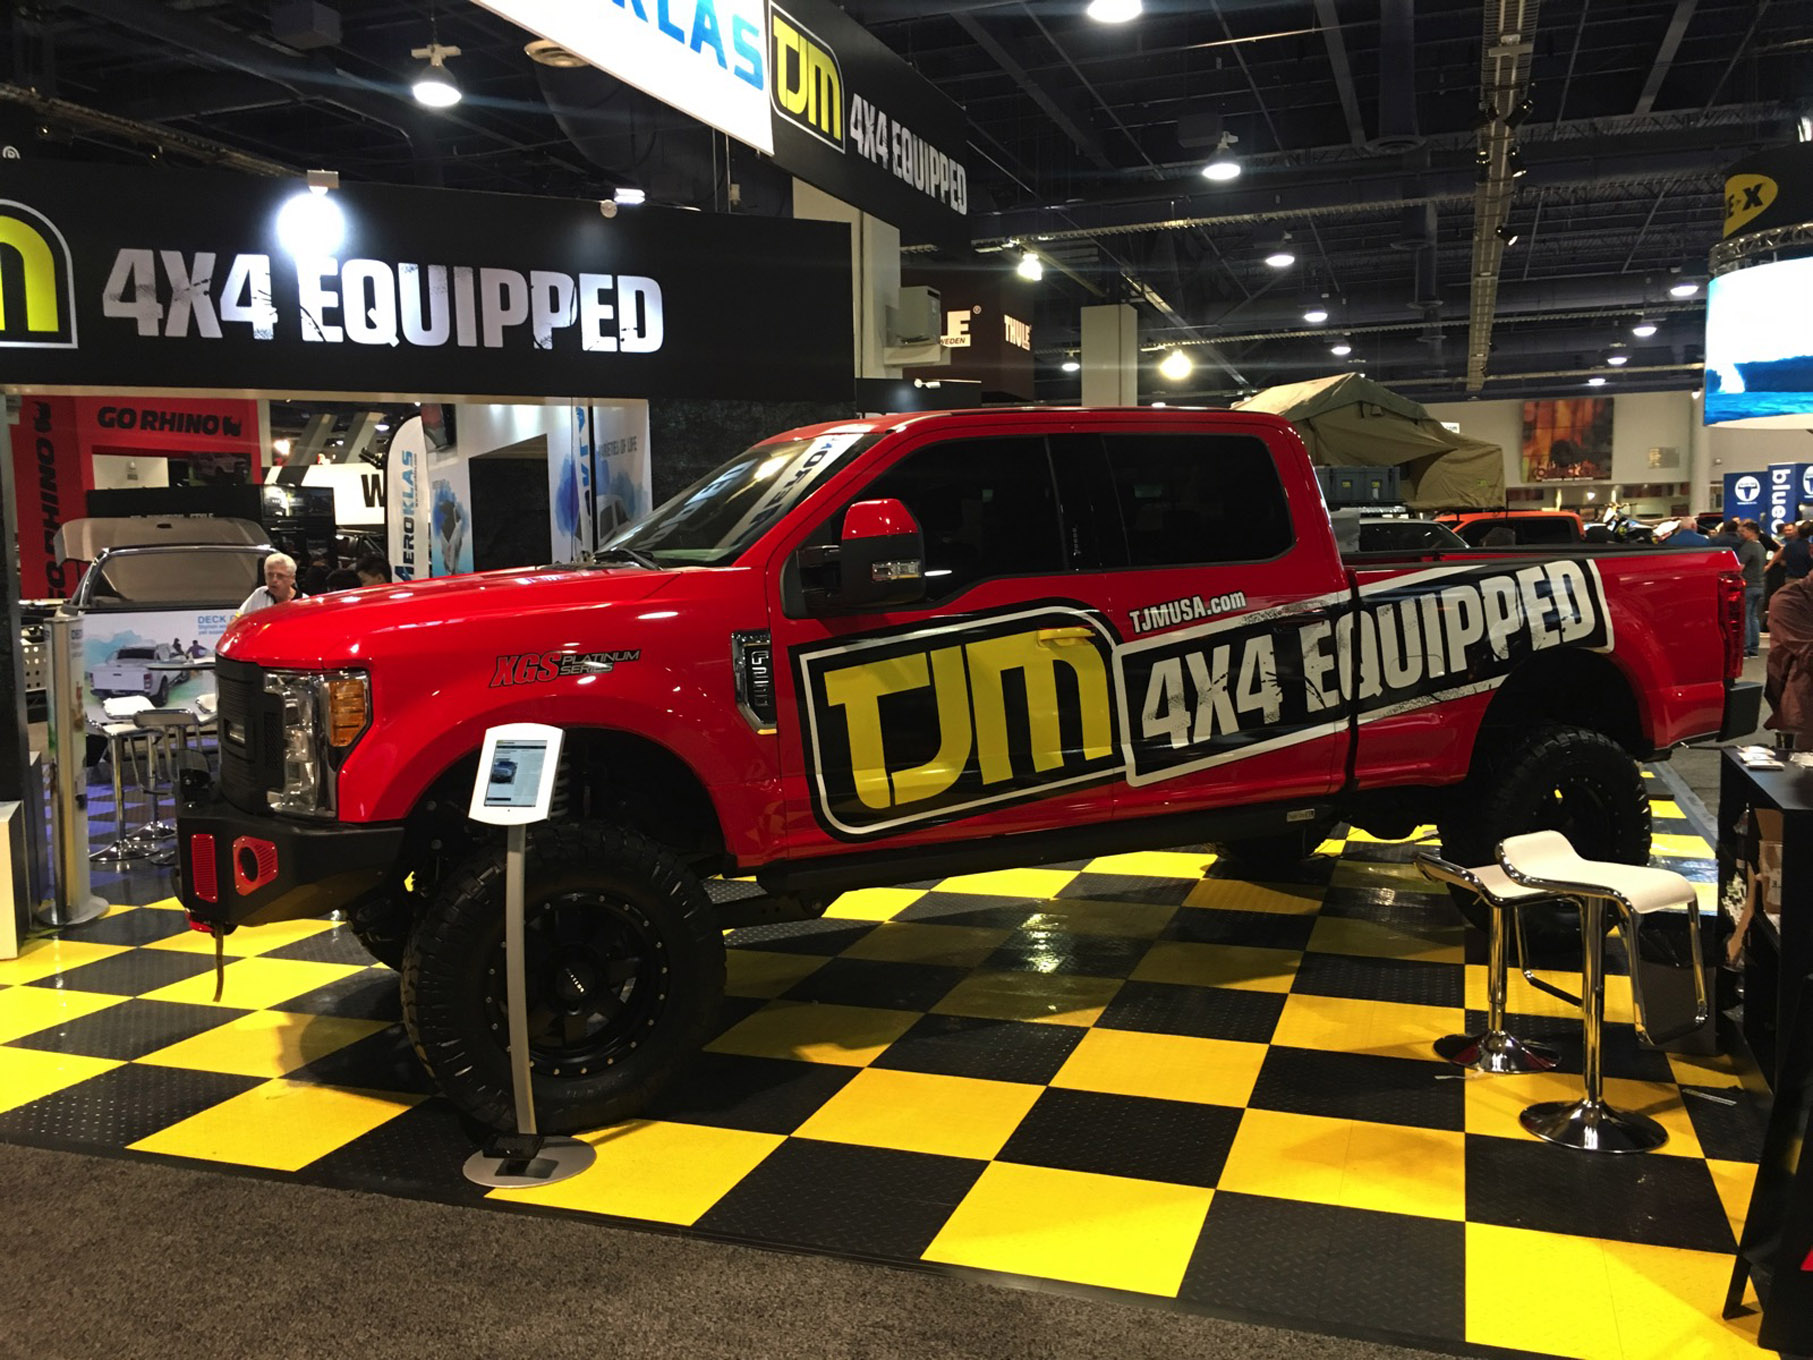 038 sema 2017 day 1 south upper hall gallery photos